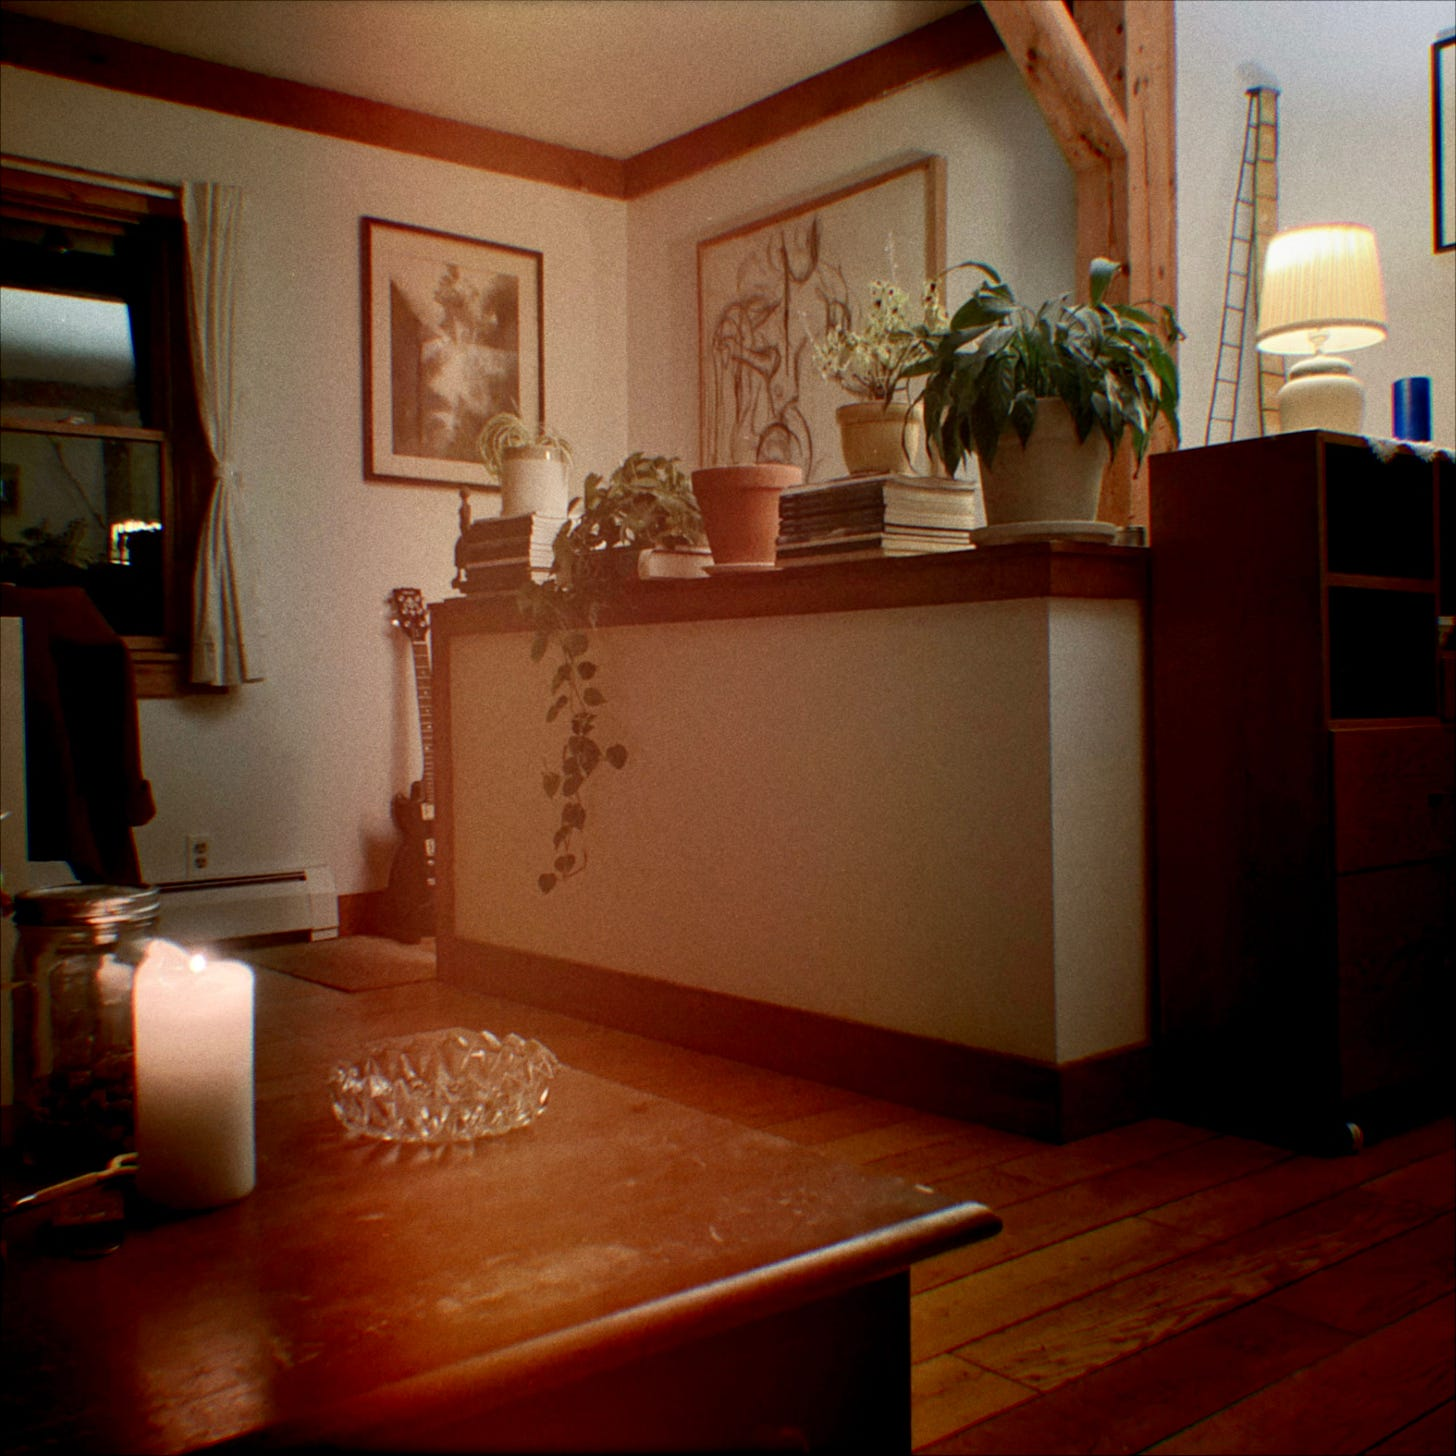 A snapshot of a lounge area with a sepia hue. In the lower right corner is a dark brown wooden table with a lit white candle and a cut glass bowl on it. Further to the right are windows with open curtains. In the centre, there is a high white ledge with several plants on it, behind there are two paintings on the white walls. To the top left is a lit small white lamp on another dark wooden piece of furniture.